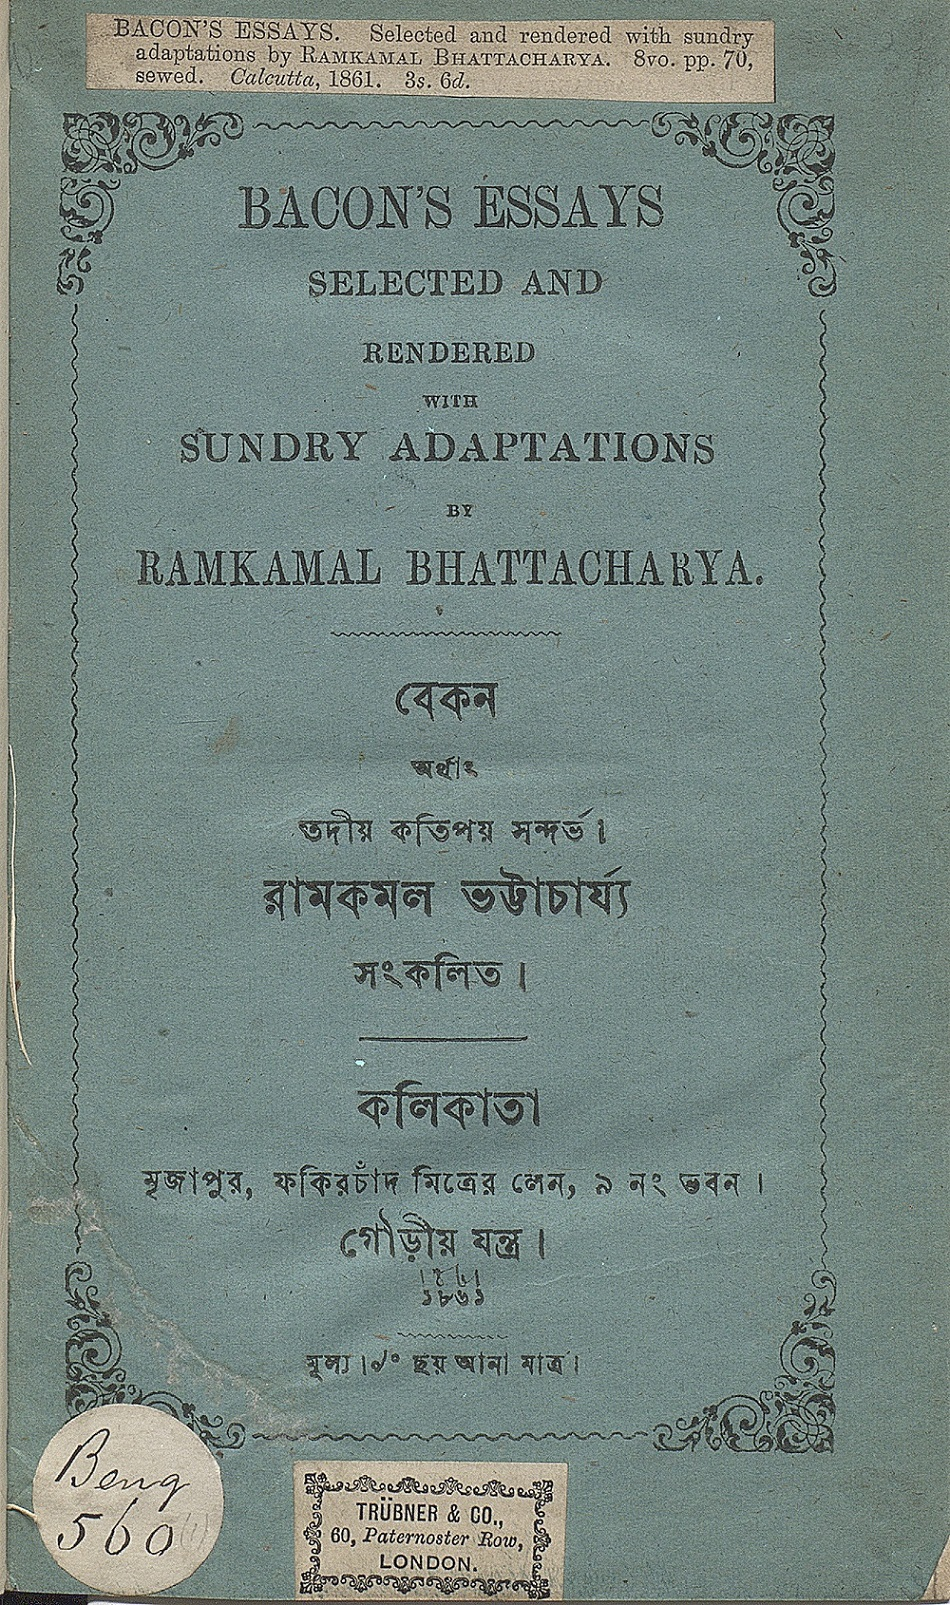 Title page to 'Bacon's Essays' translated into Bengali, Two Centuries of Indian Print Digitisation project, British Library